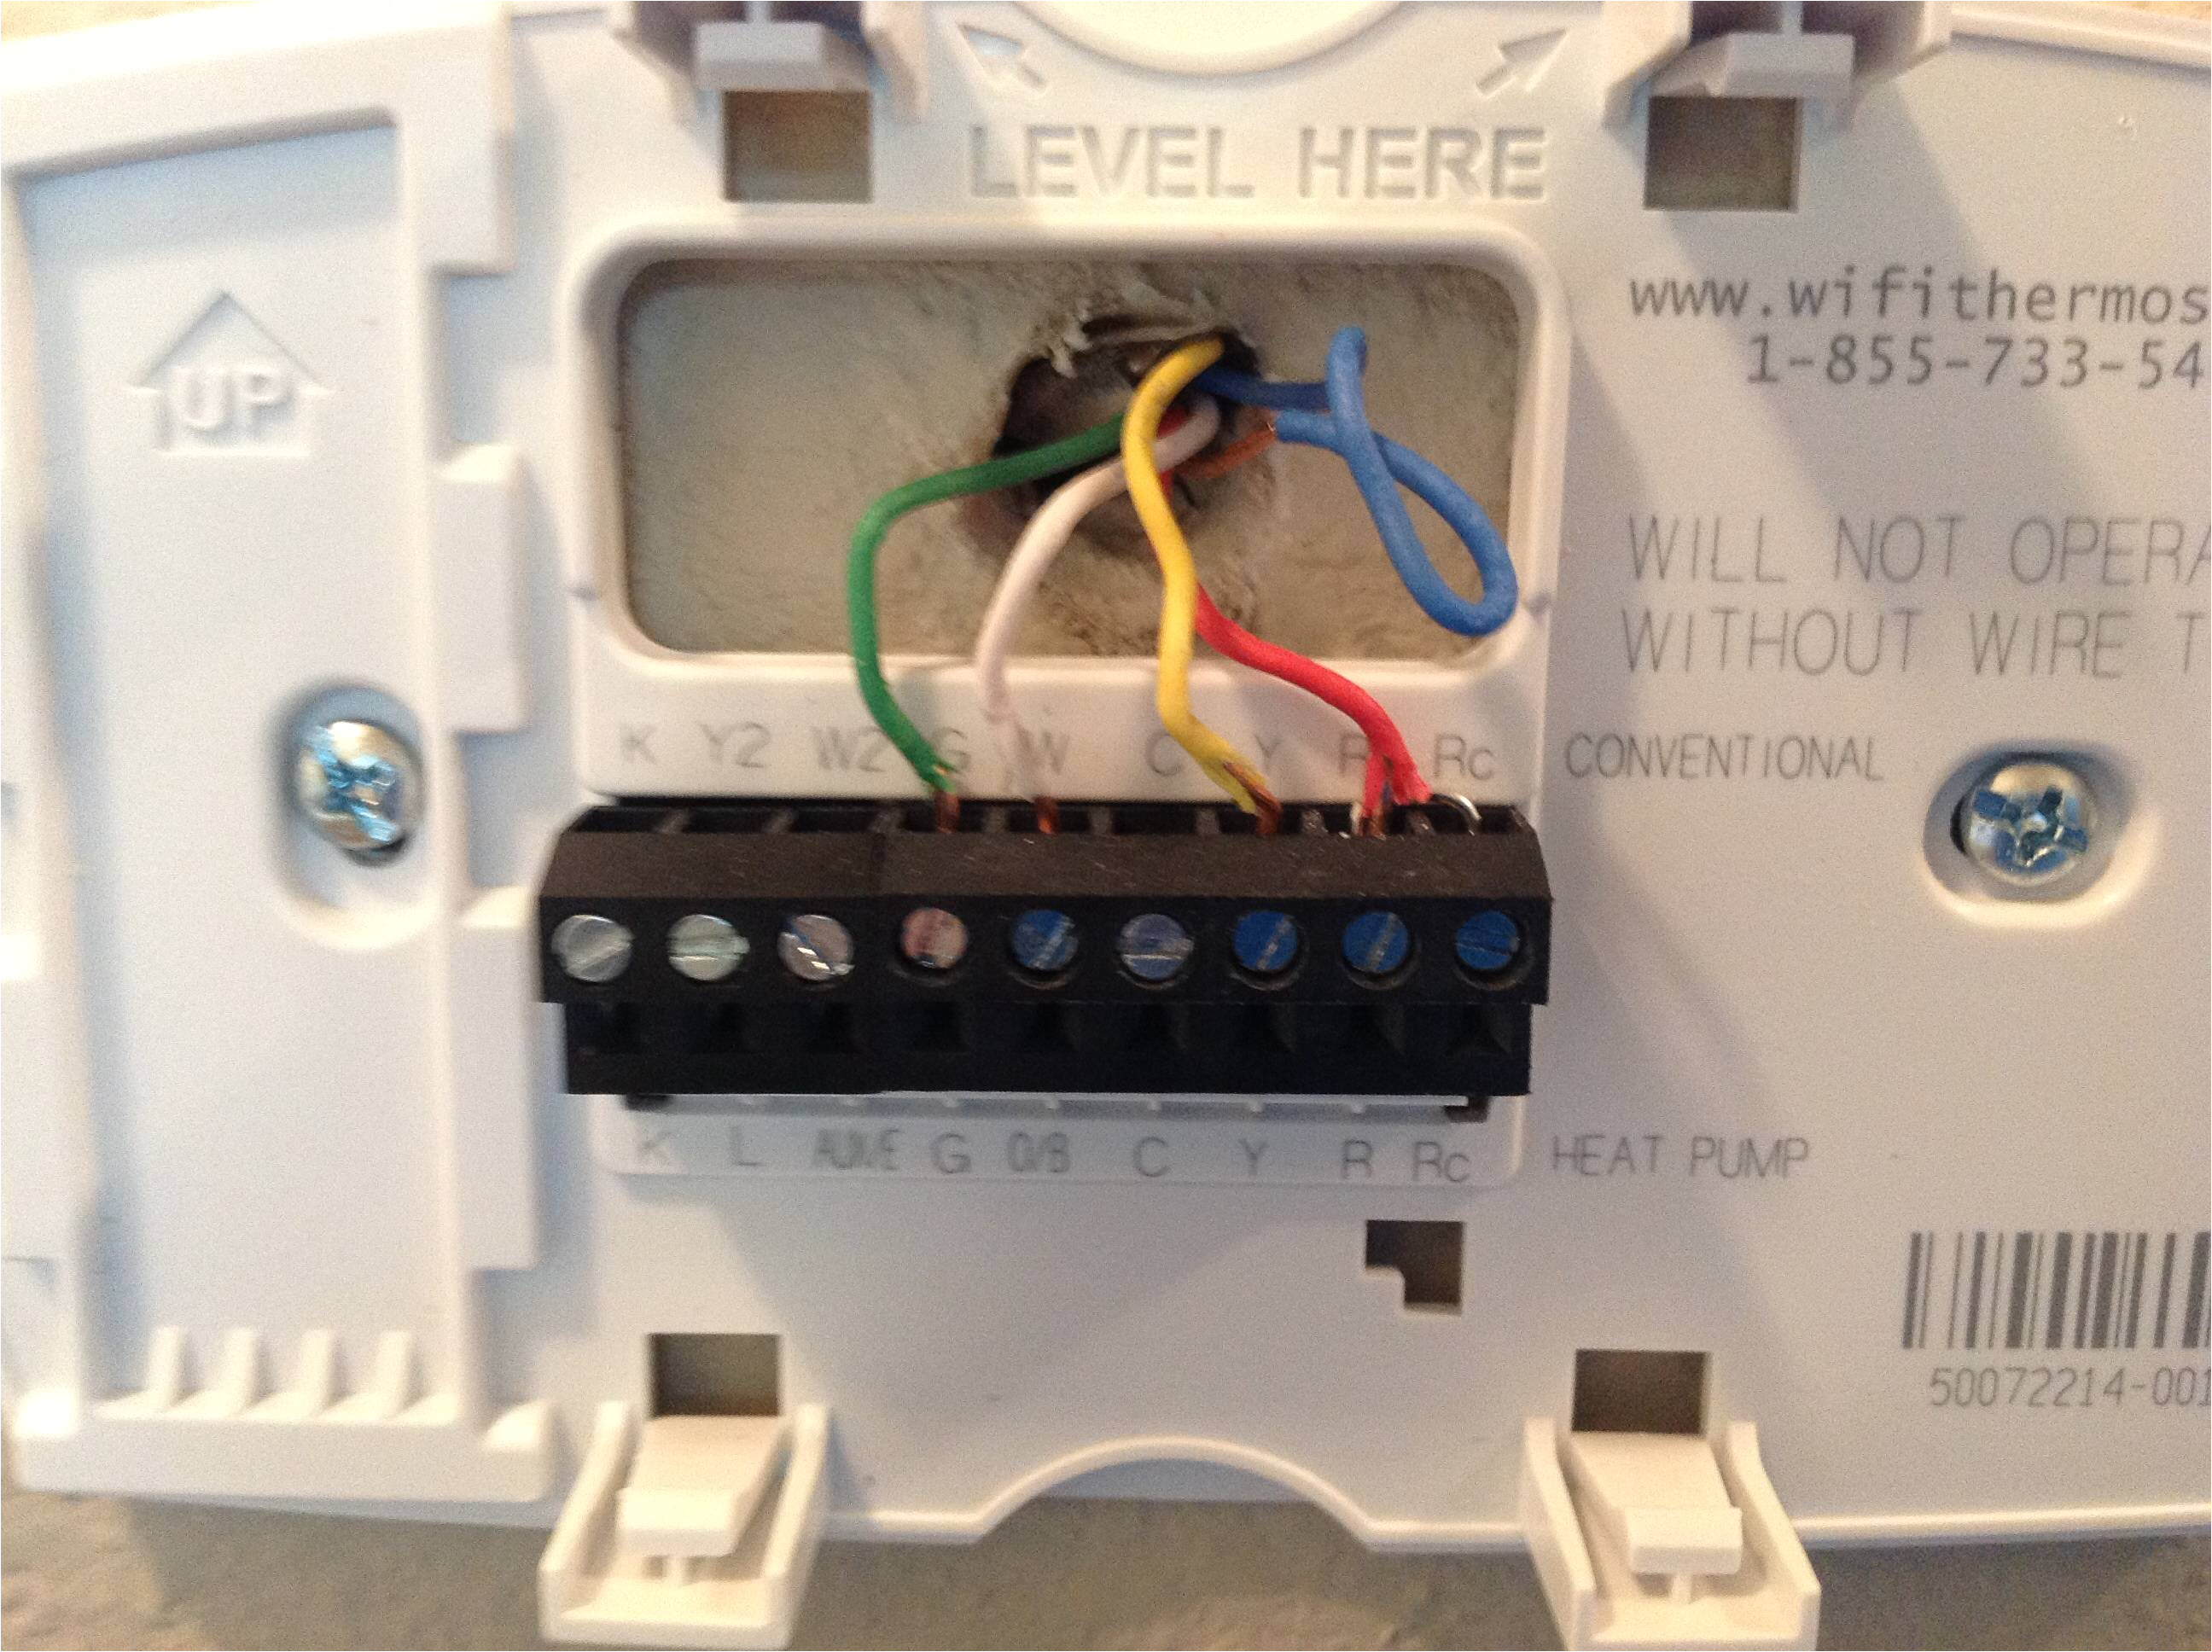 wiring diagram for honeywell programmable thermostat wiring honeywell programmable thermostat likewise honeywell thermostat wiring